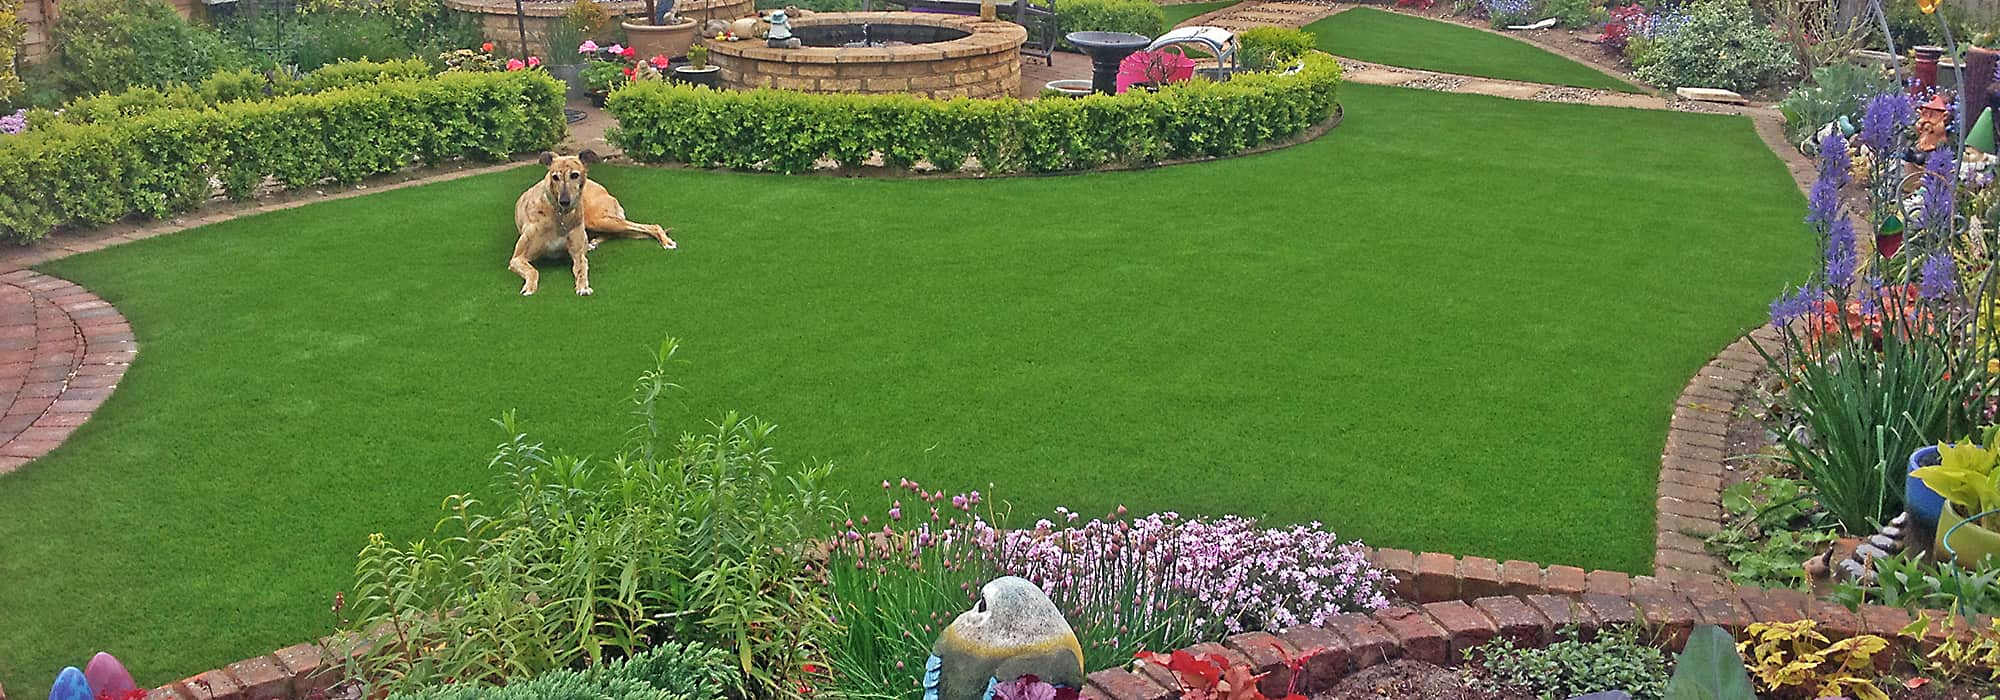 Artificial grass - 1